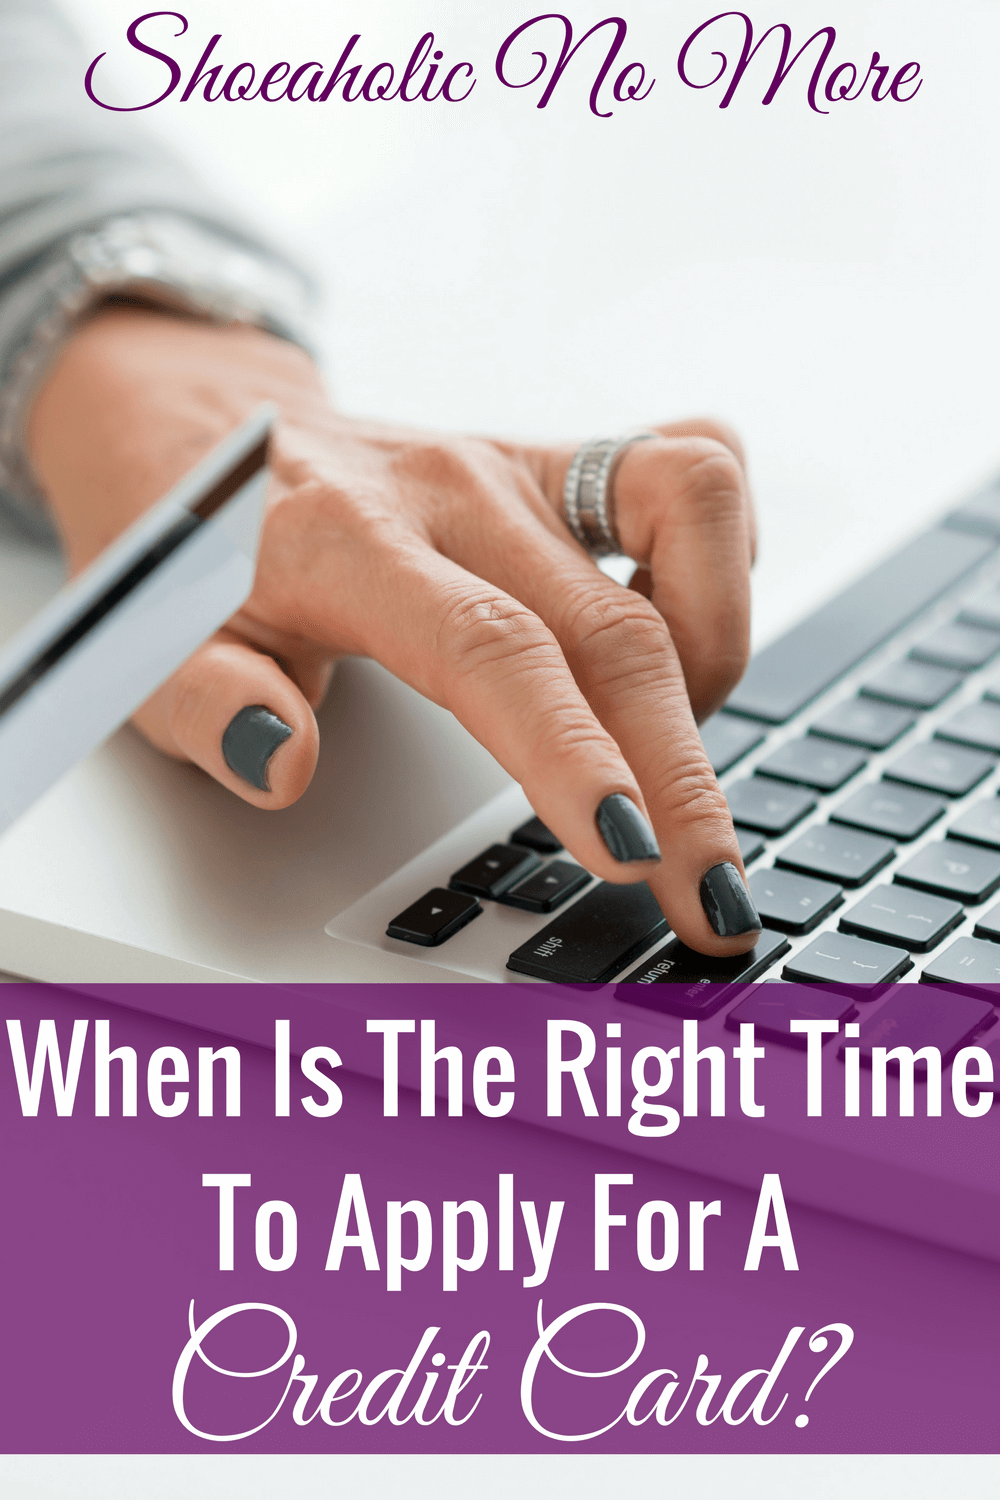 Should you apply to get a new credit card? This blogger shares her feelings on credit cards, and why they may not be so bad!